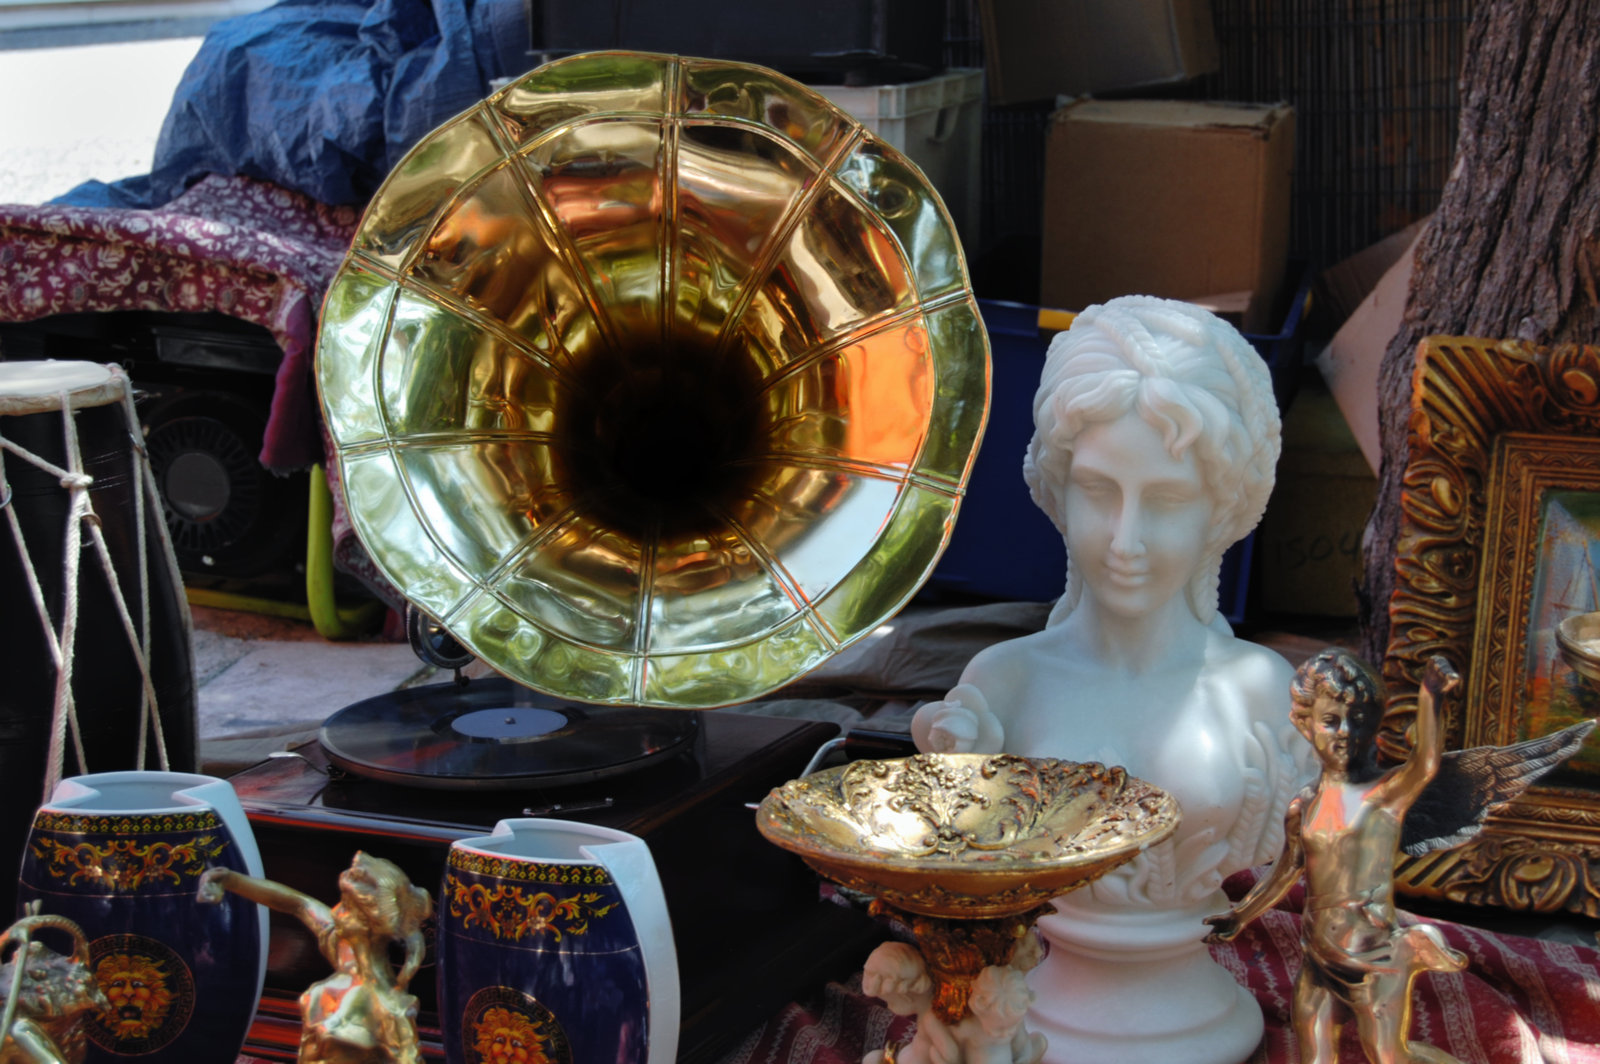 List Of Valuable Antique Items